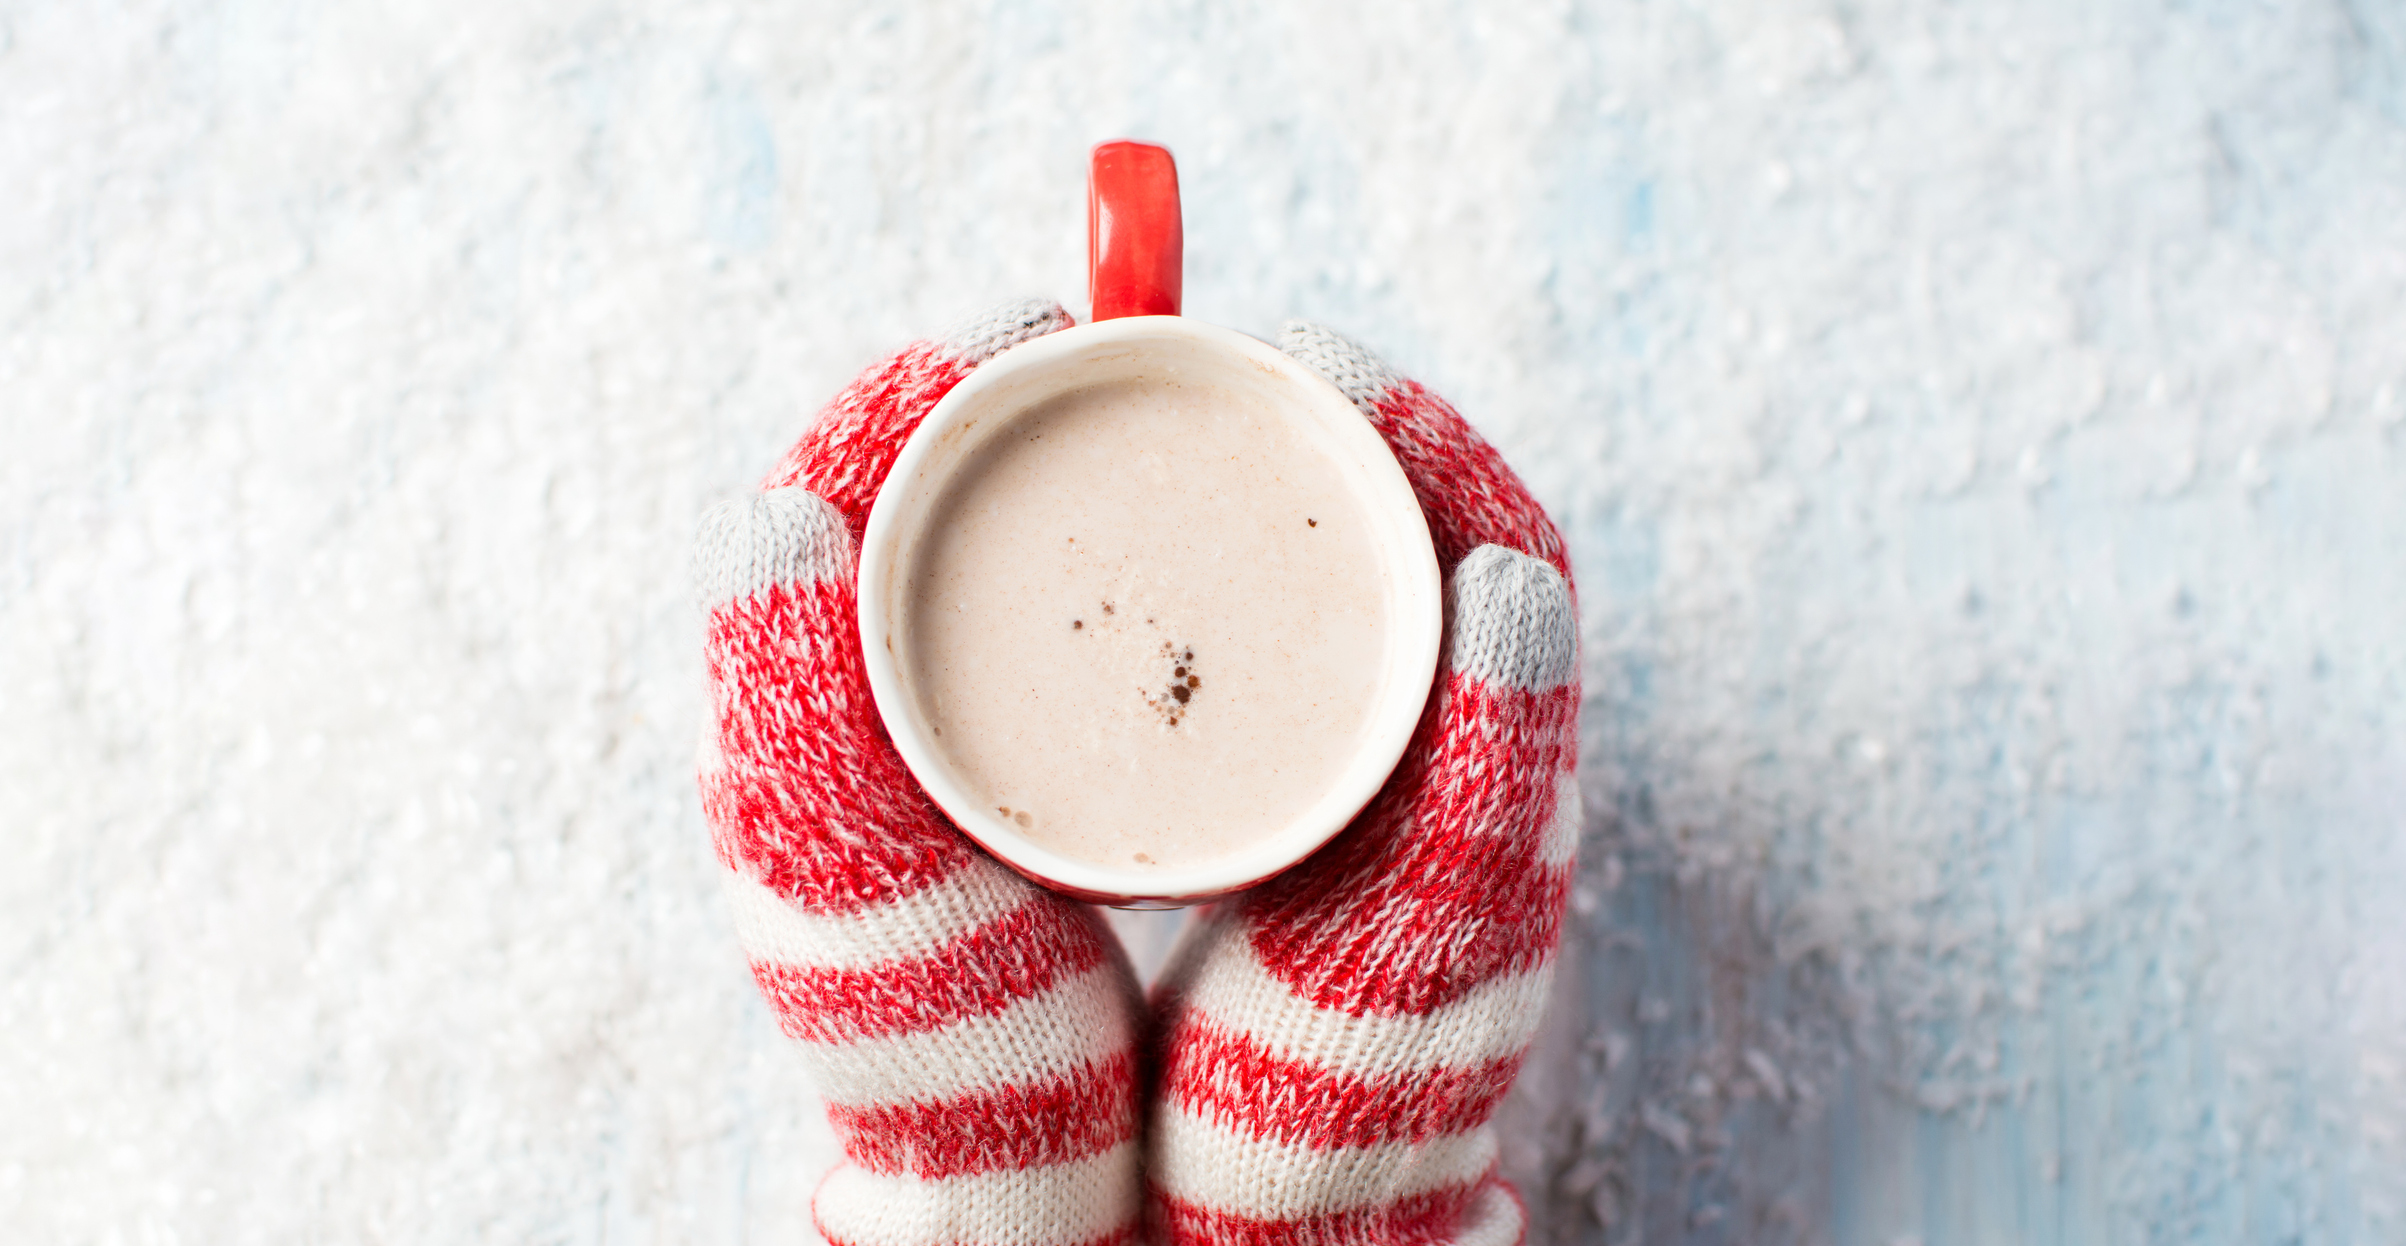 female hands in gloves holding hot chocolate over a snowy background